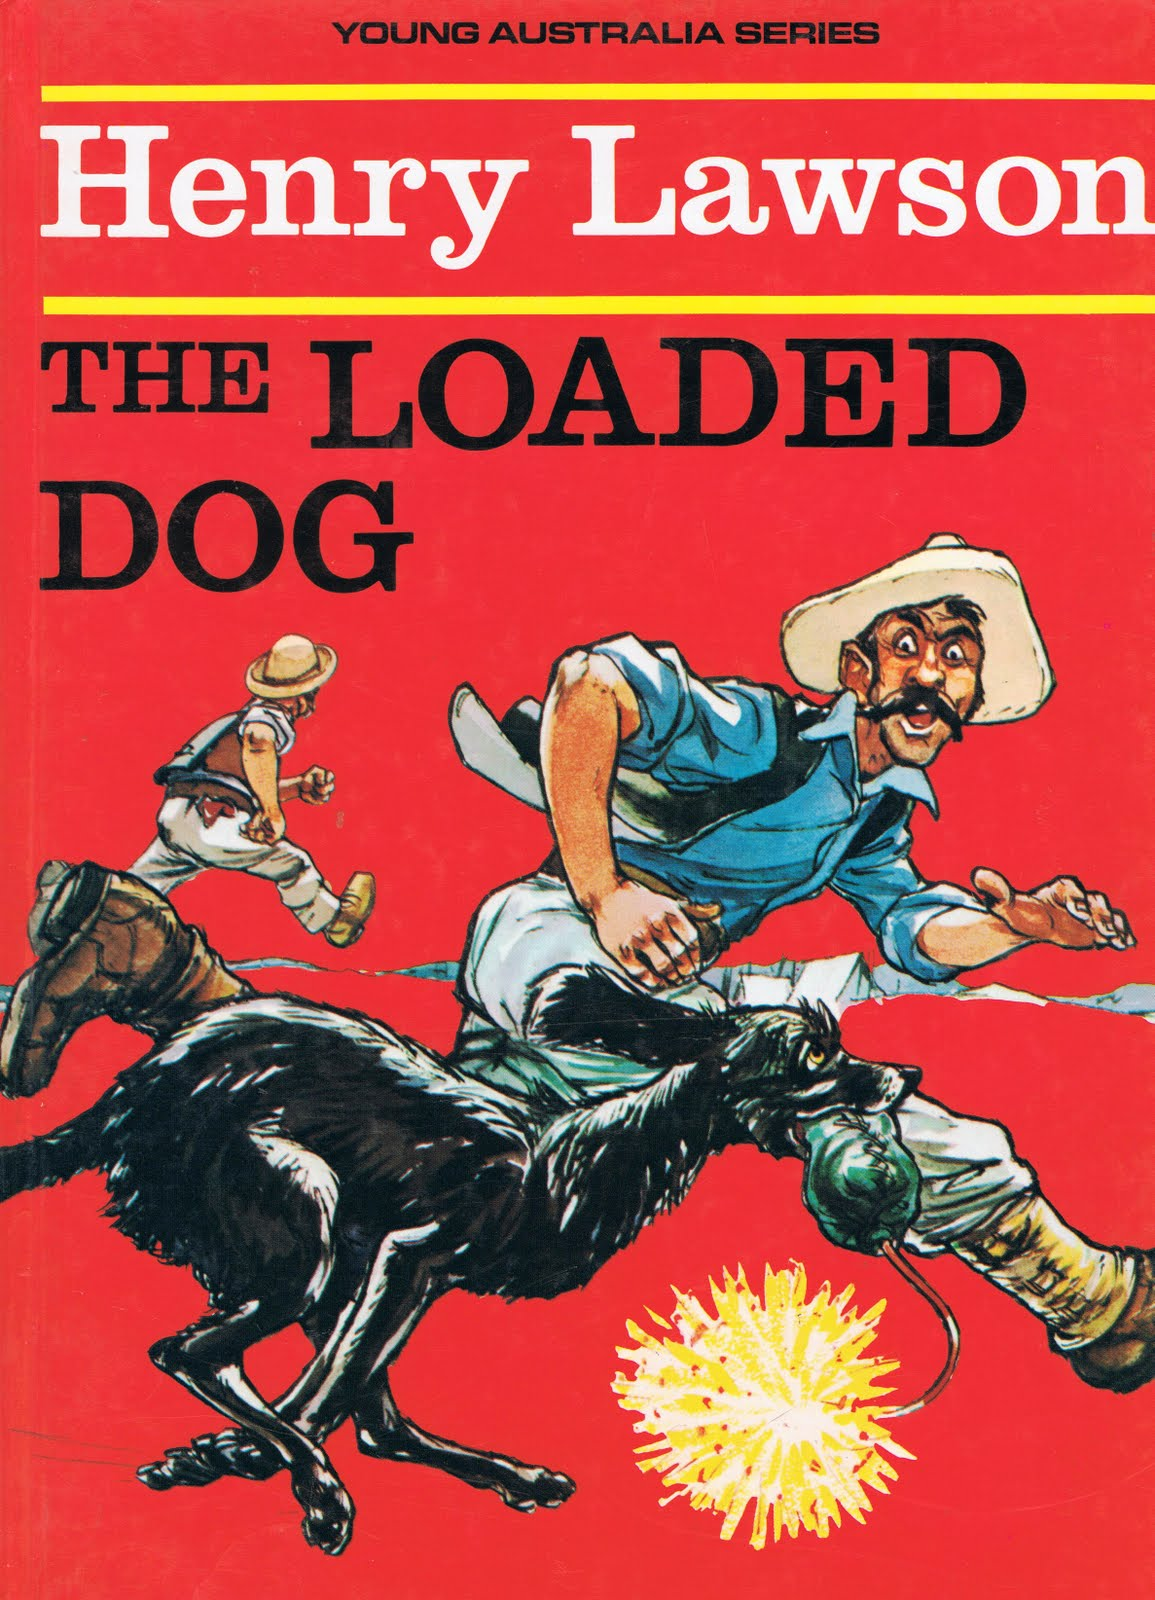 the loaded dog henry lawson Gold miners andy, dave and jim are sinking a shaft at stony creek after a hard day's fishing, andy and dave decide that it would be easier to blow the fish out of the water but their young dog becomes curious about their experiment, with explosive results.